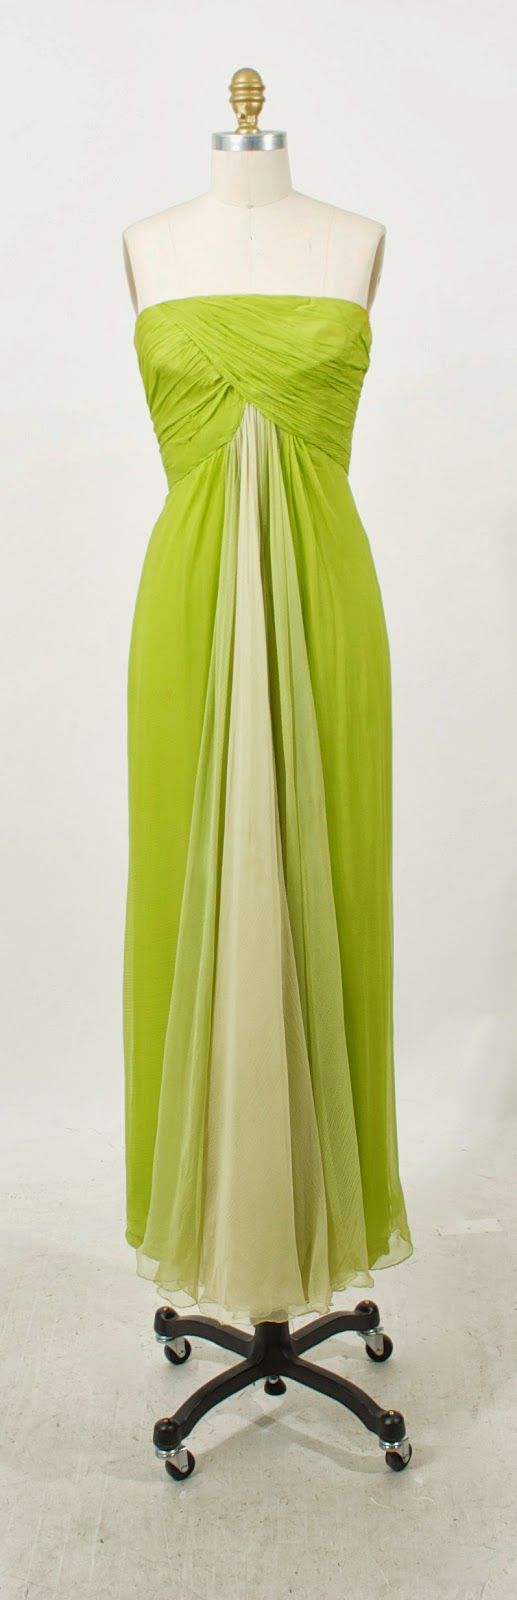 Jean Louis lime chiffon gown with shawl, c. 1960's. Modern size 2.